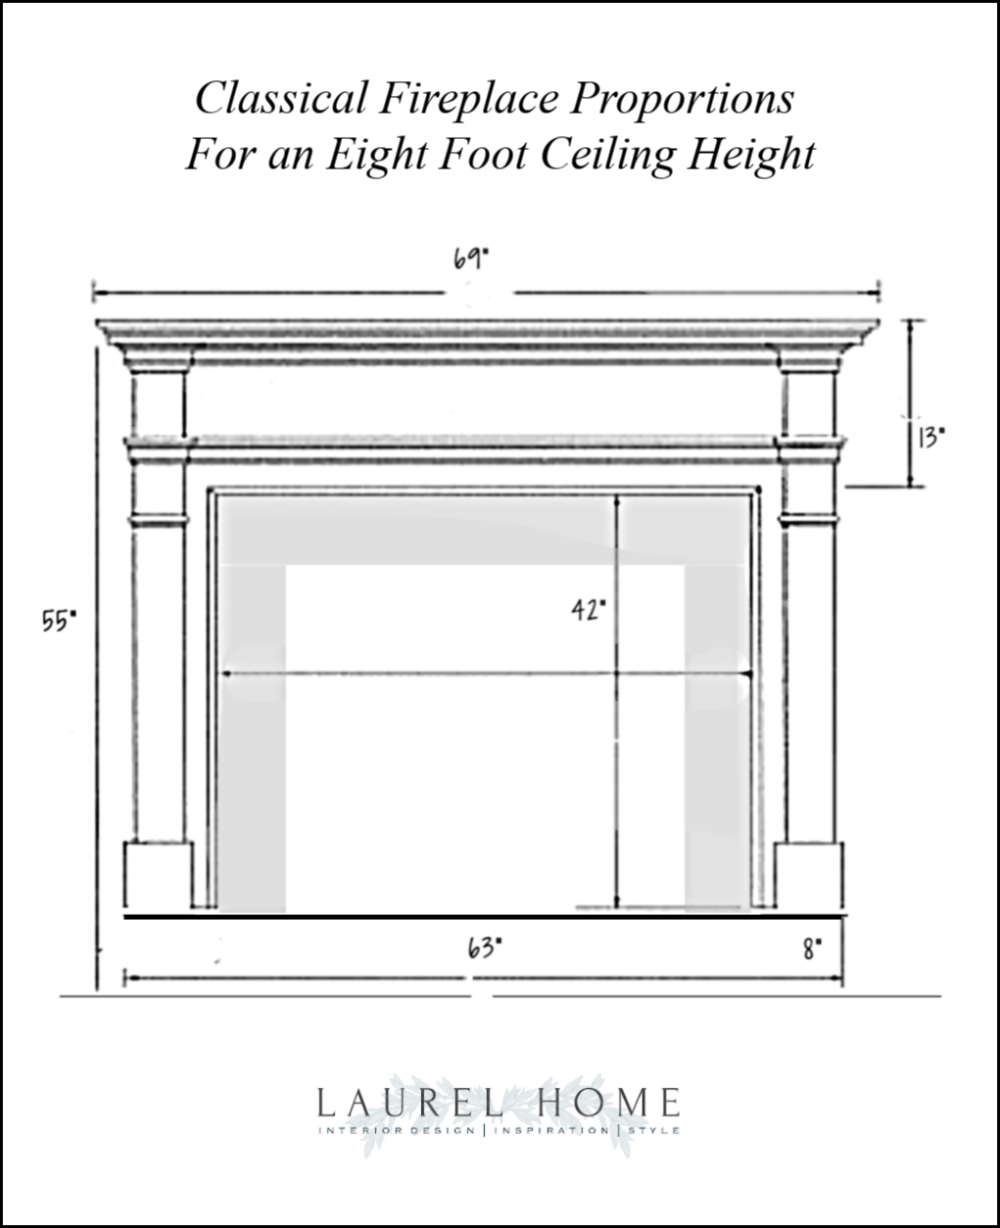 Best Fireplace Mantel Proportions How Not To Muck It Up In 2020 Fireplace Dimensions Fireplace Mantels Fireplace Mantel Shelf